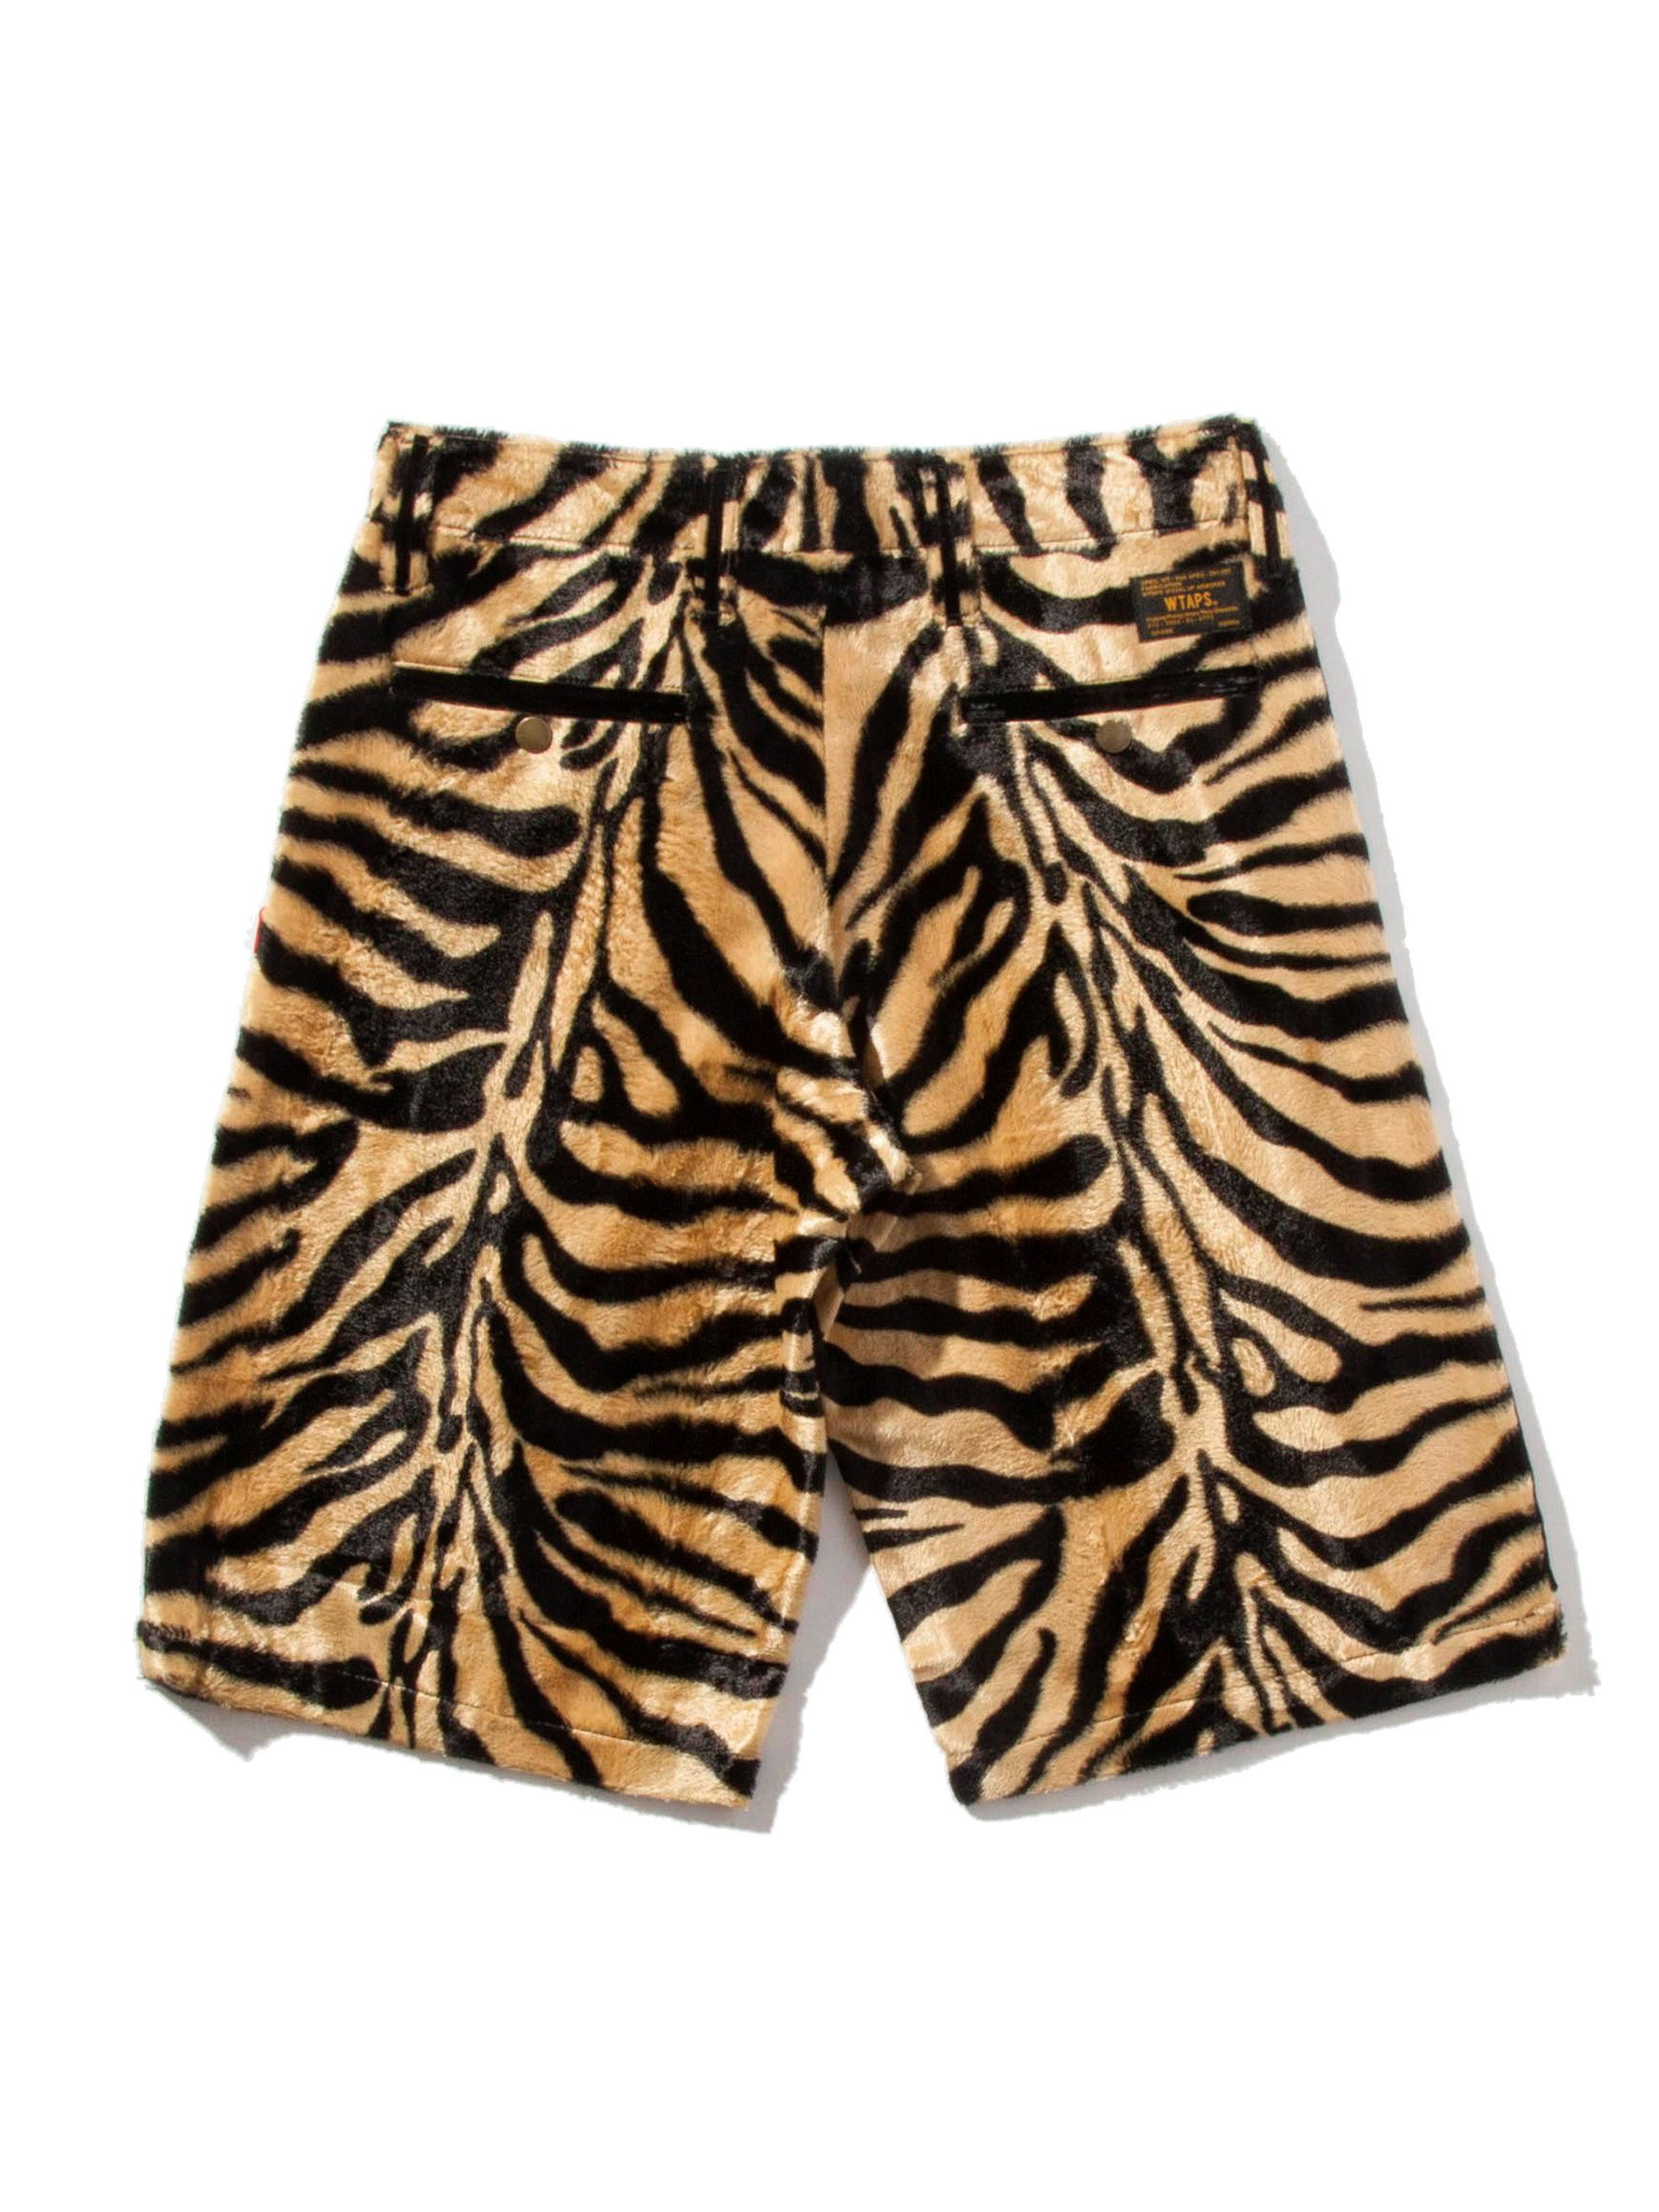 Tiger Stripe Paw Shorts 6